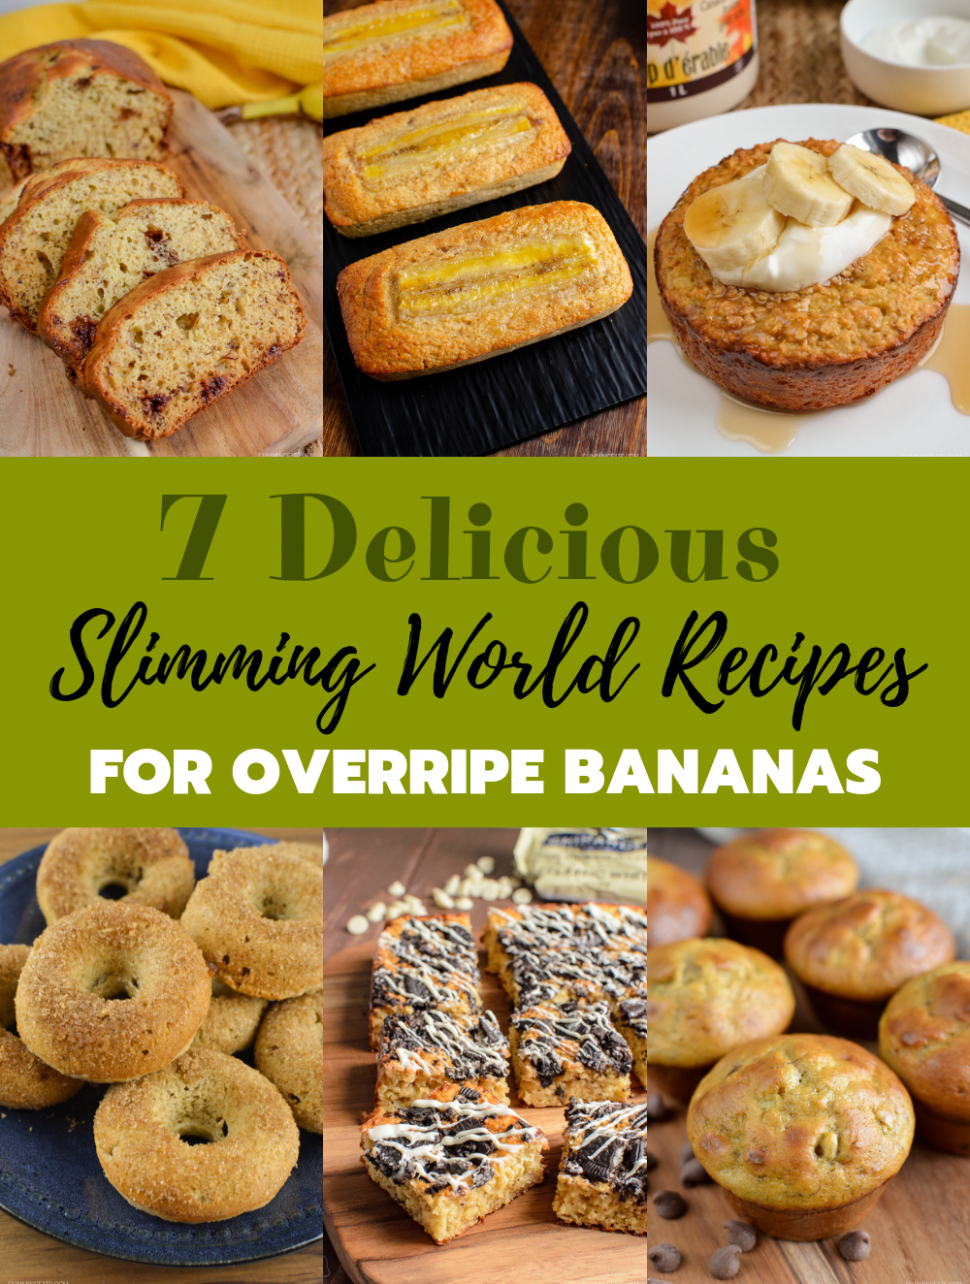 13 Delicious Slimming World Recipes To Make With Overripe Bananas - healthy recipes ripe bananas